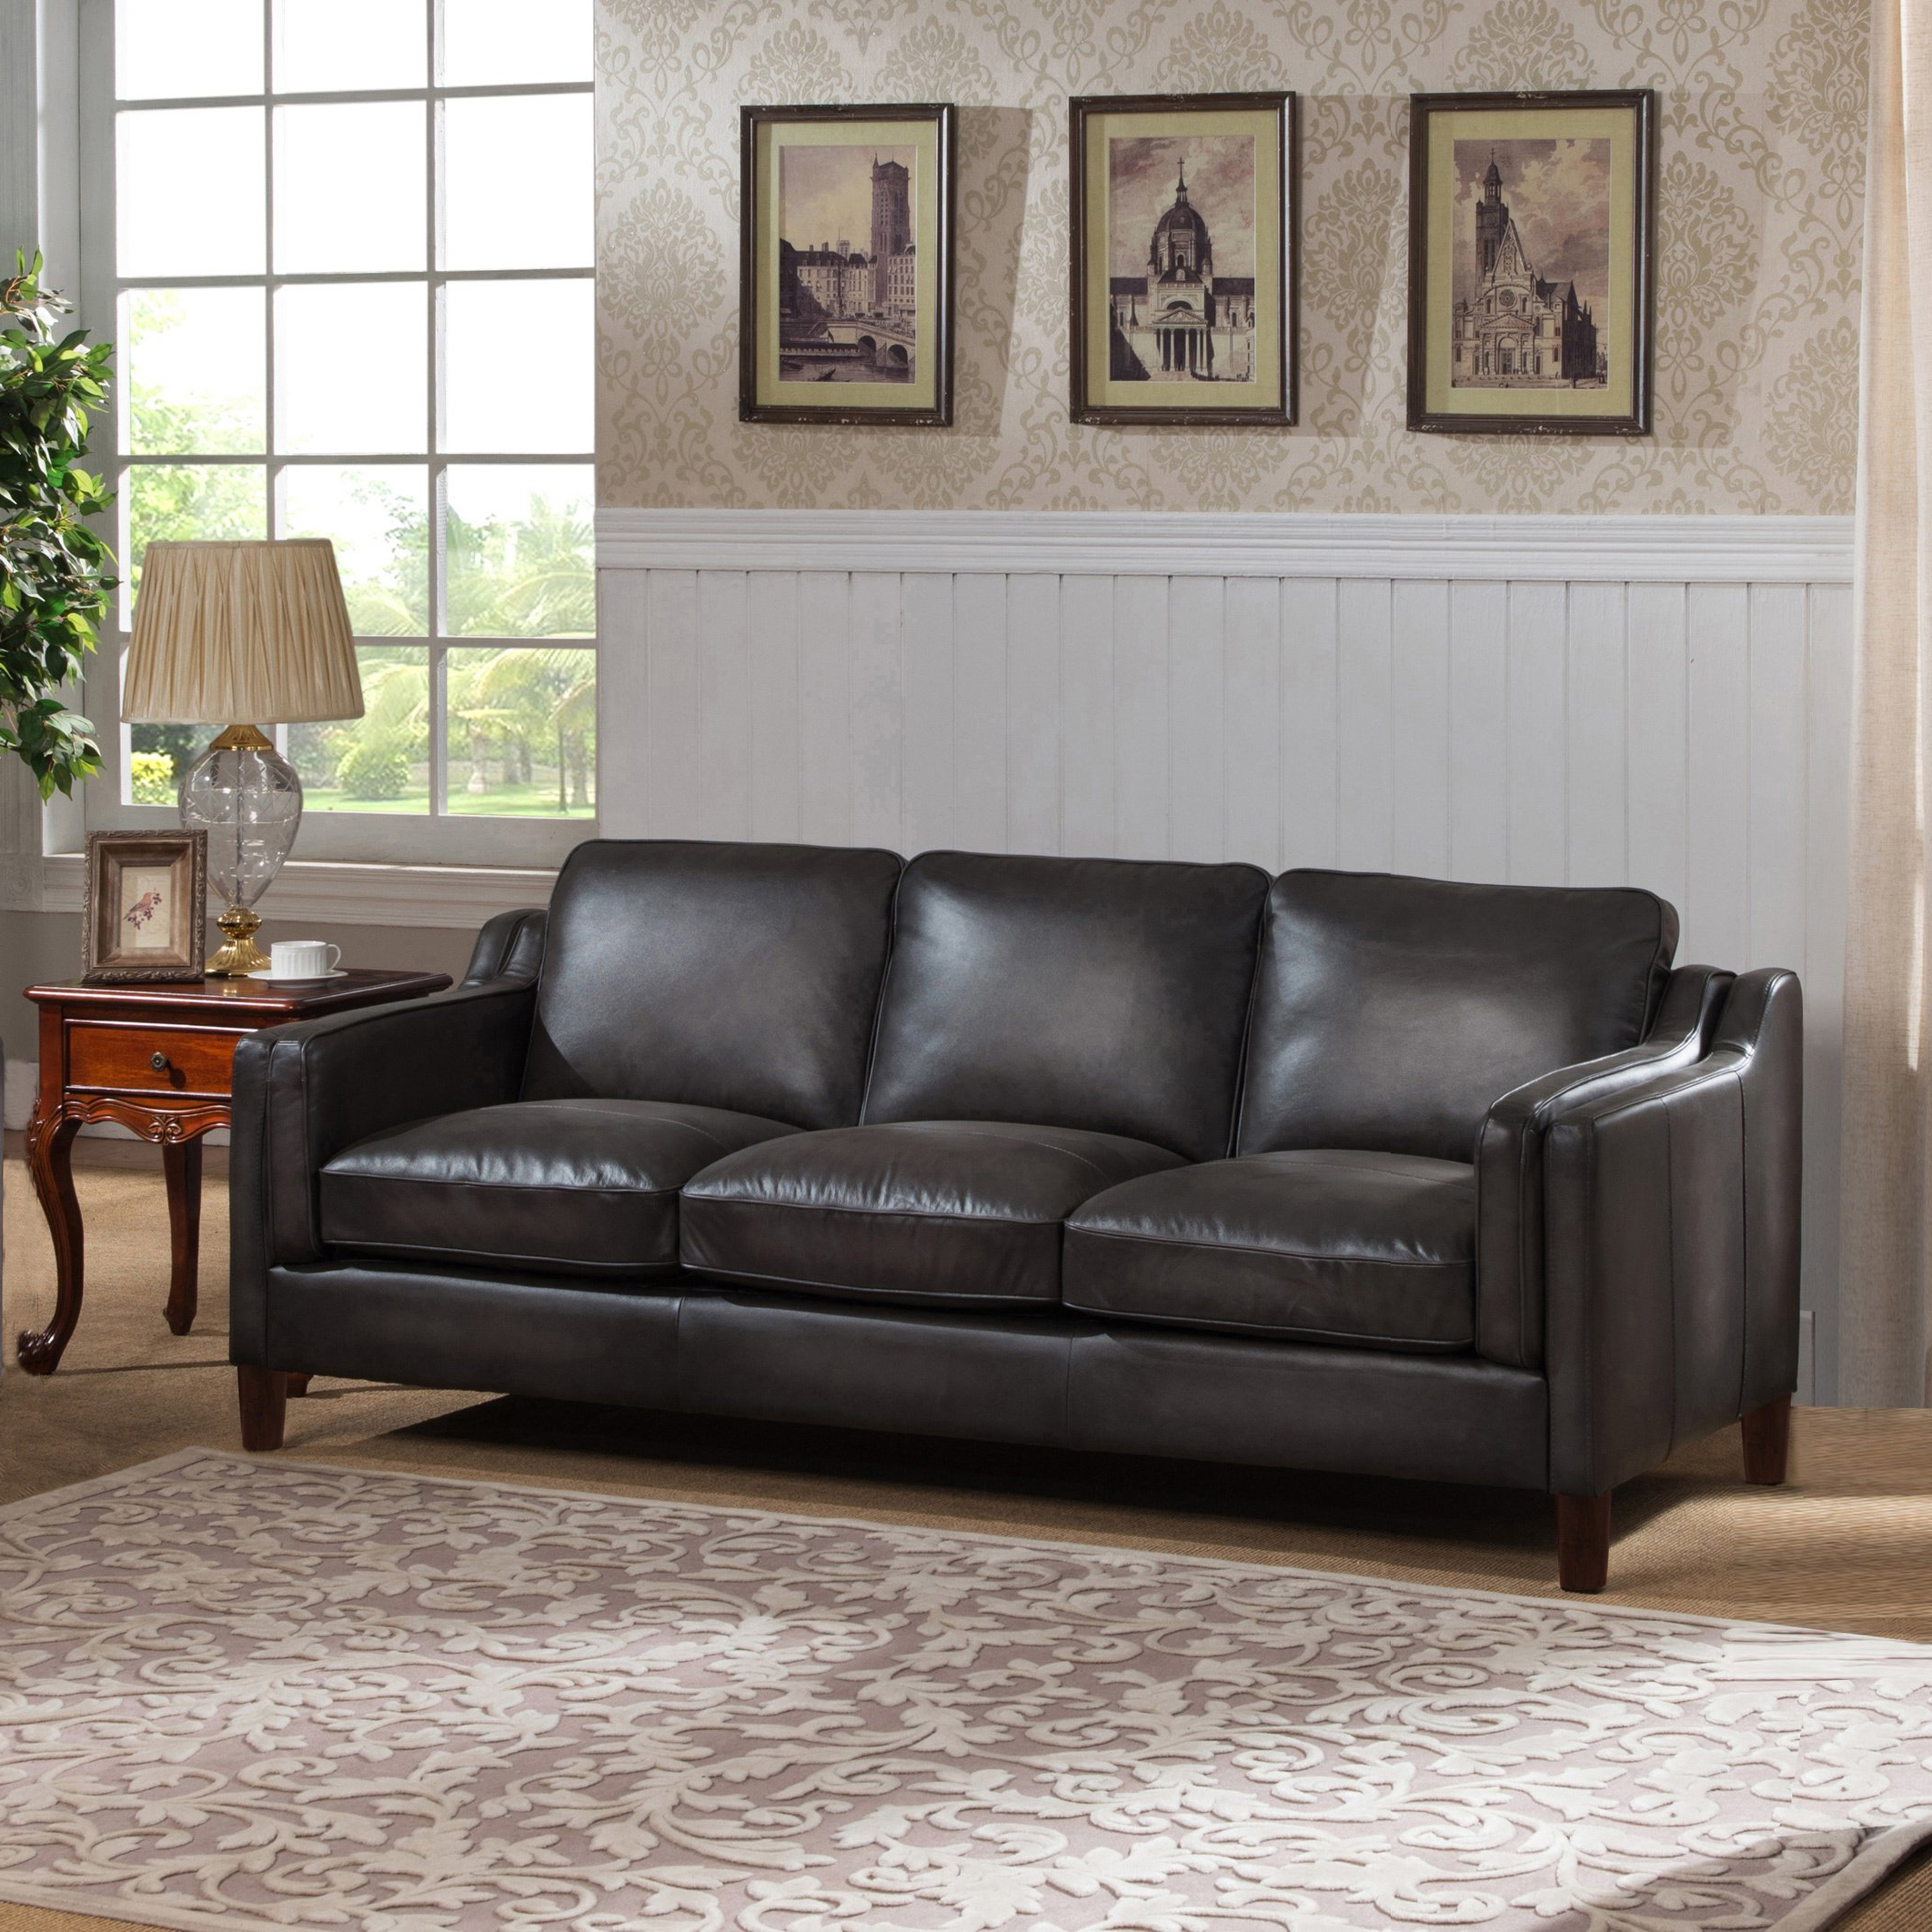 Fashionable Ames Arm Sofa Chairs For Shop Ames Premium Hand Rubbed Grey Top Grain Leather Sofa And Chair (View 11 of 20)